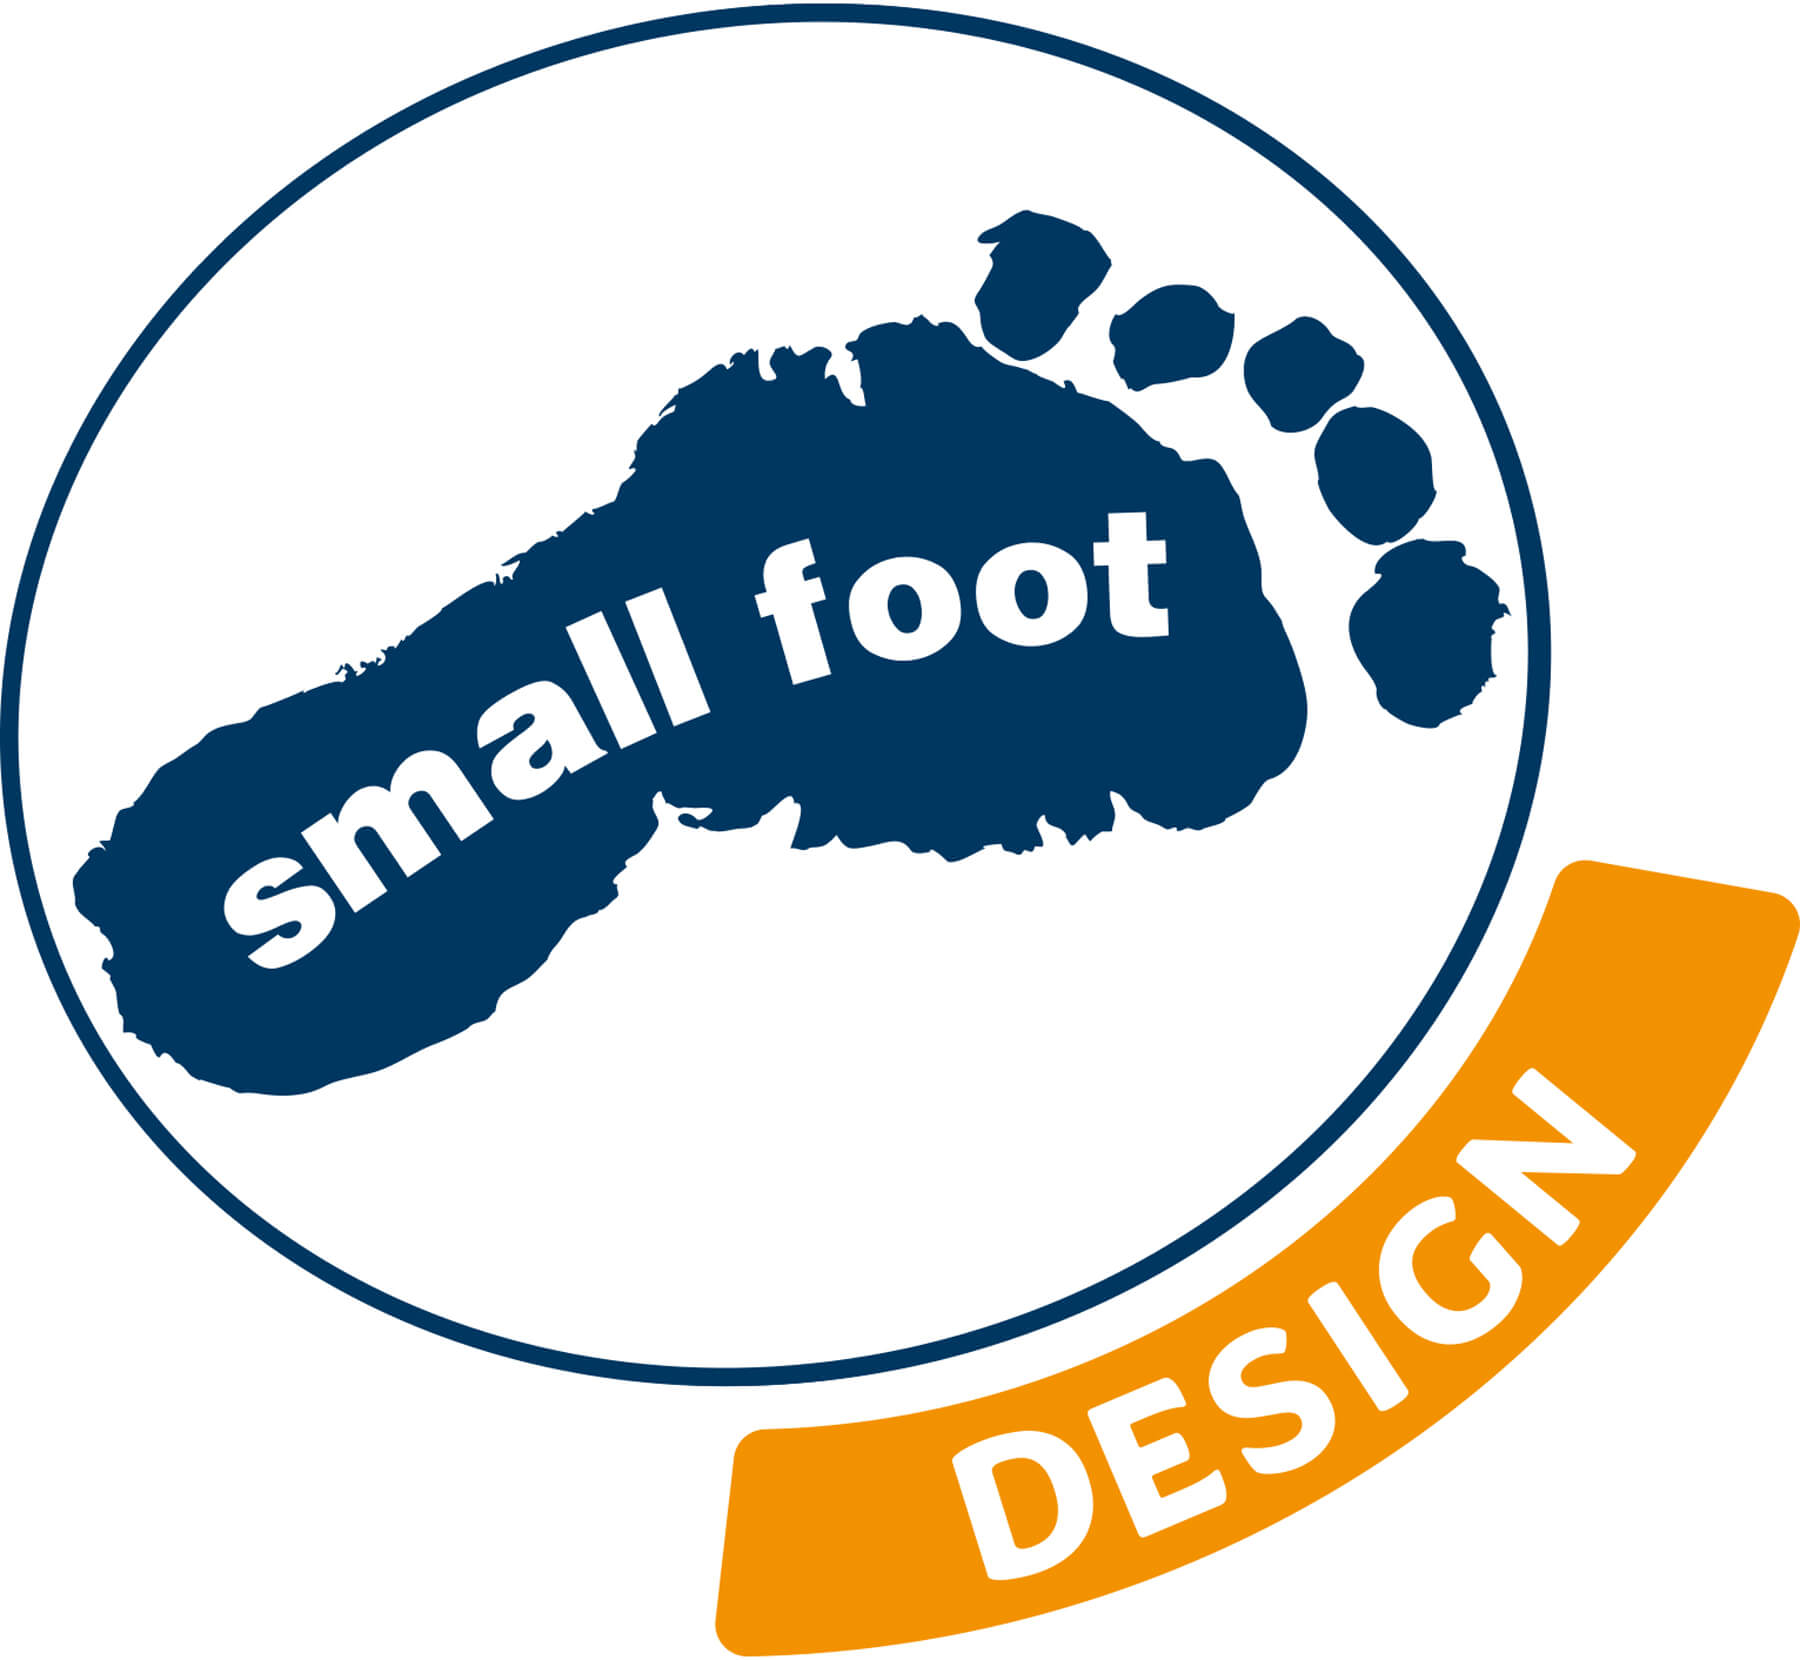 small_foot logo.jpg